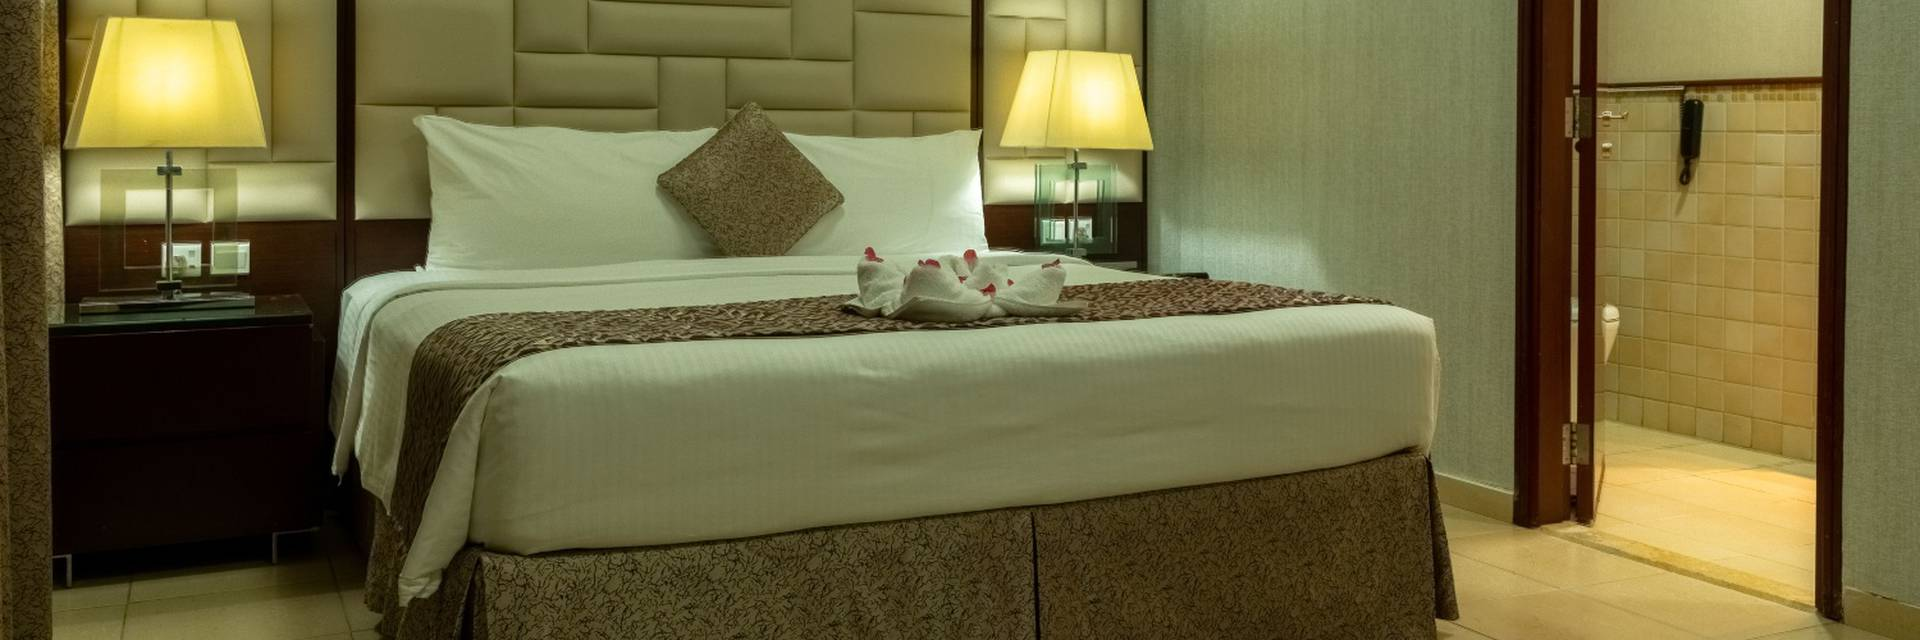 Accommodation suha hotel apartments dubai